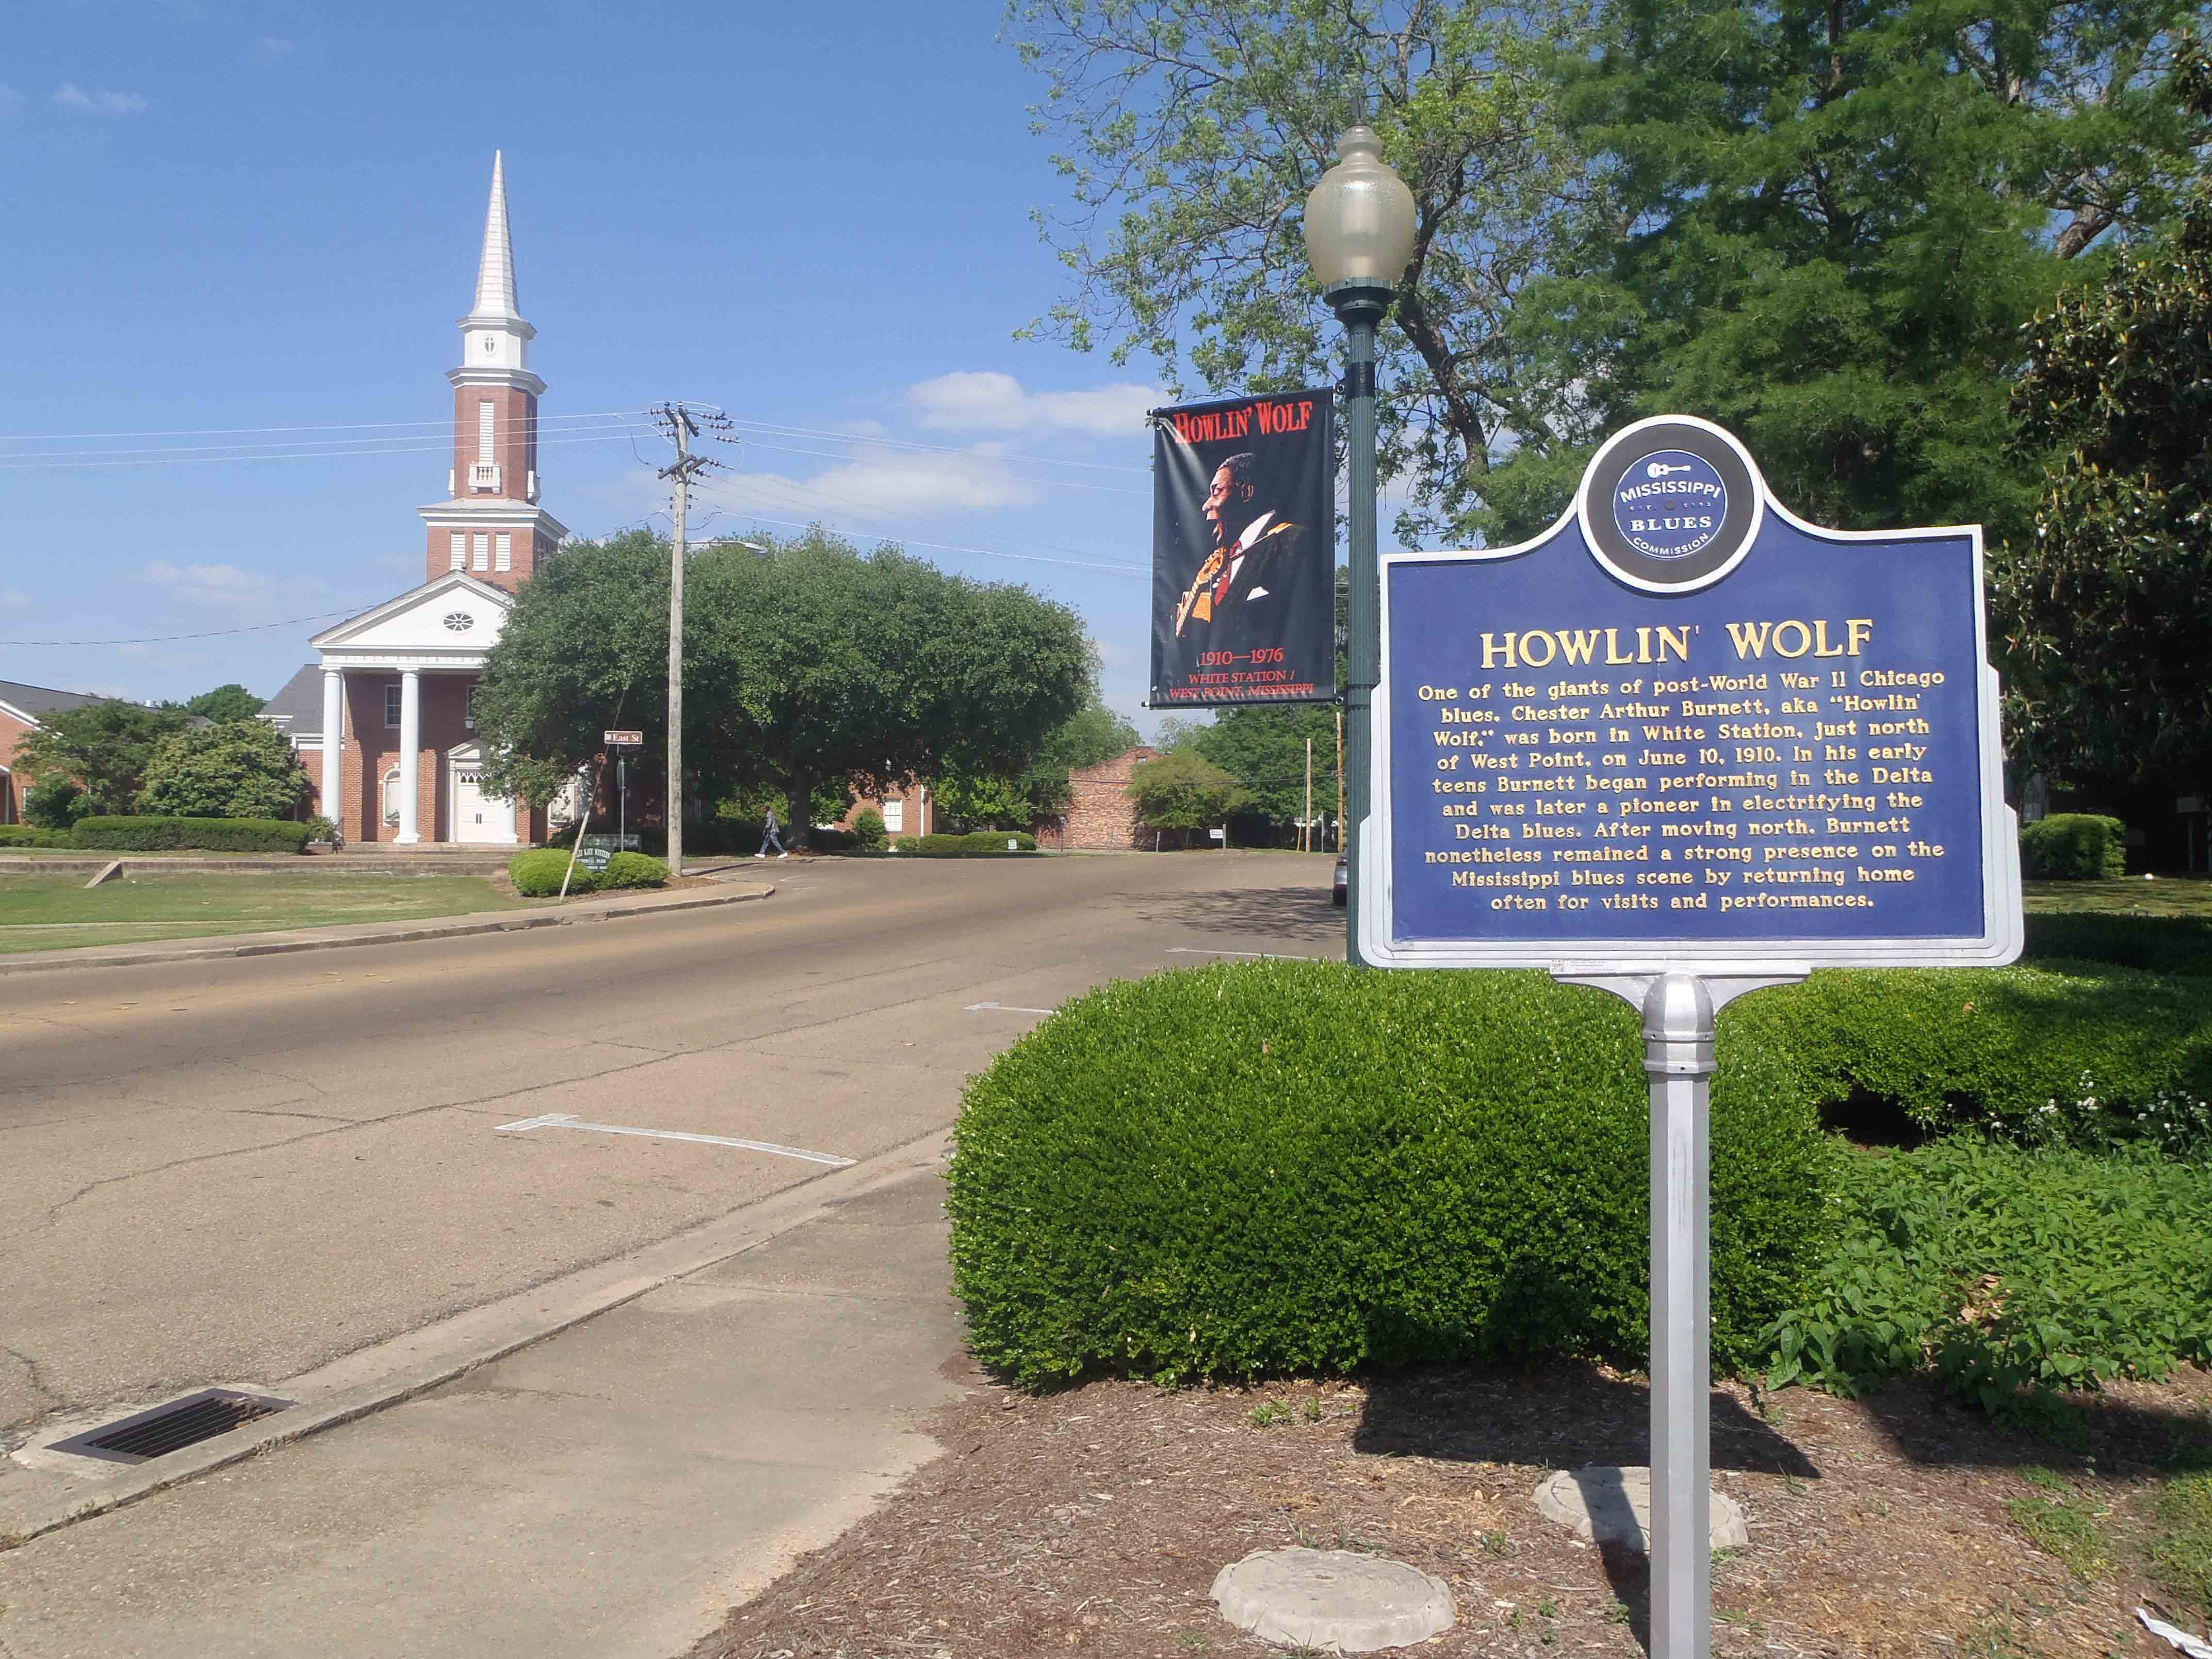 Mississippi Blues Trail marker for Howlin' Wolf in West Point, Mississippi